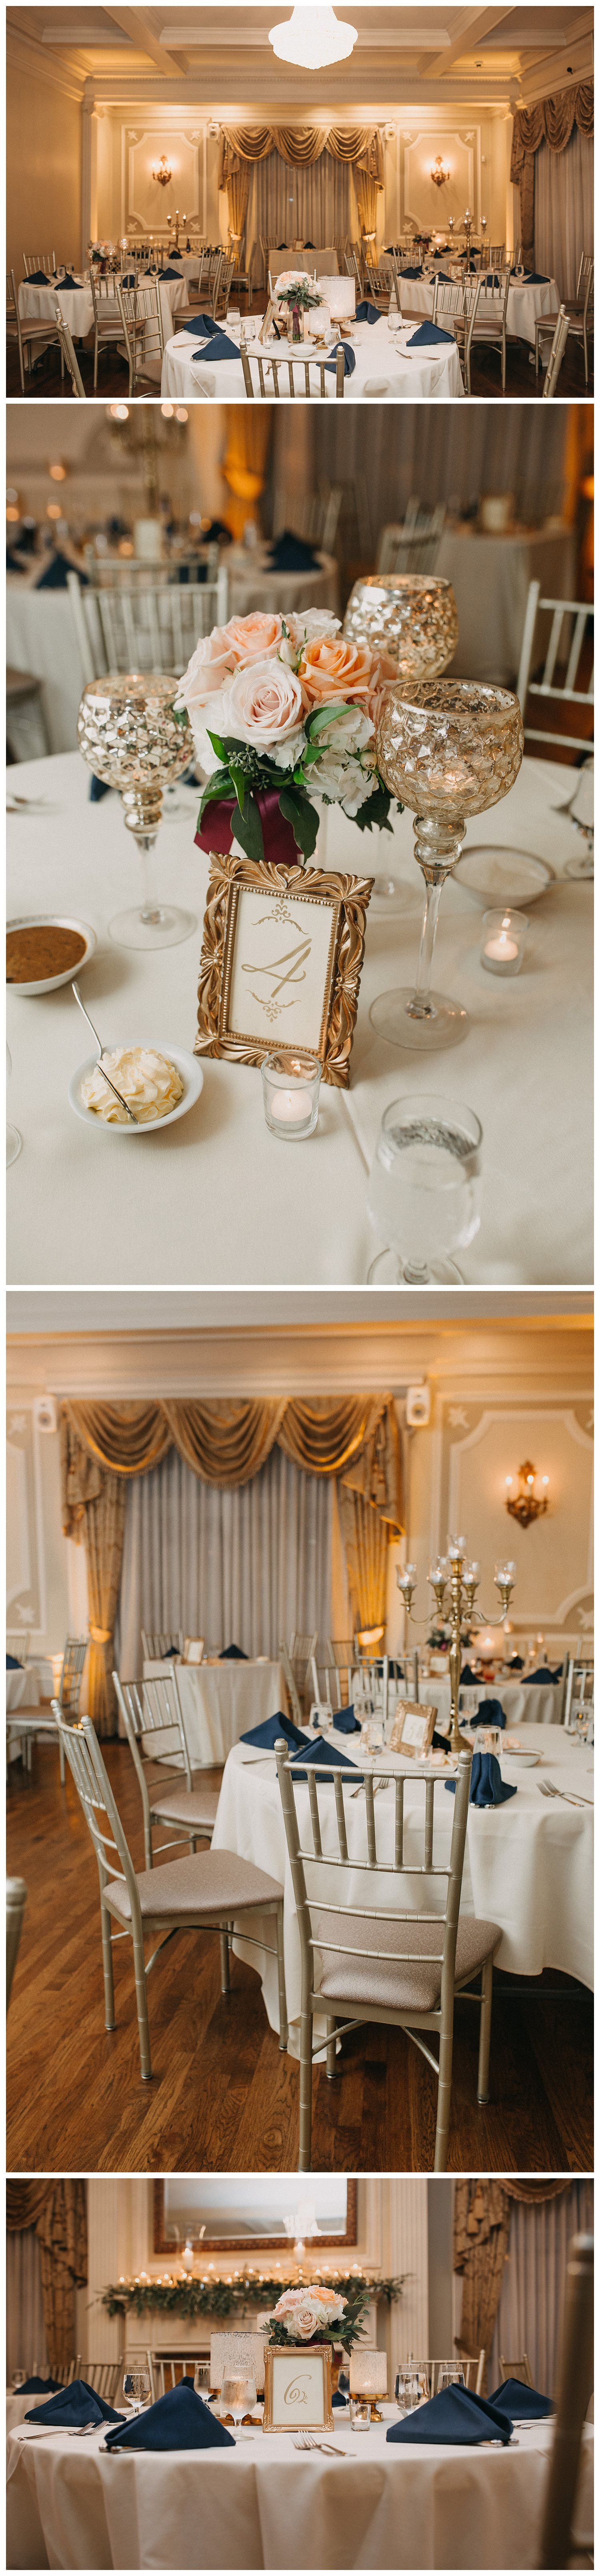 Kelsey_Diane_Photography_Loose_Mansion_Wedding_Photography_Kansas_City_Victor_Lyndsay_0155.jpg